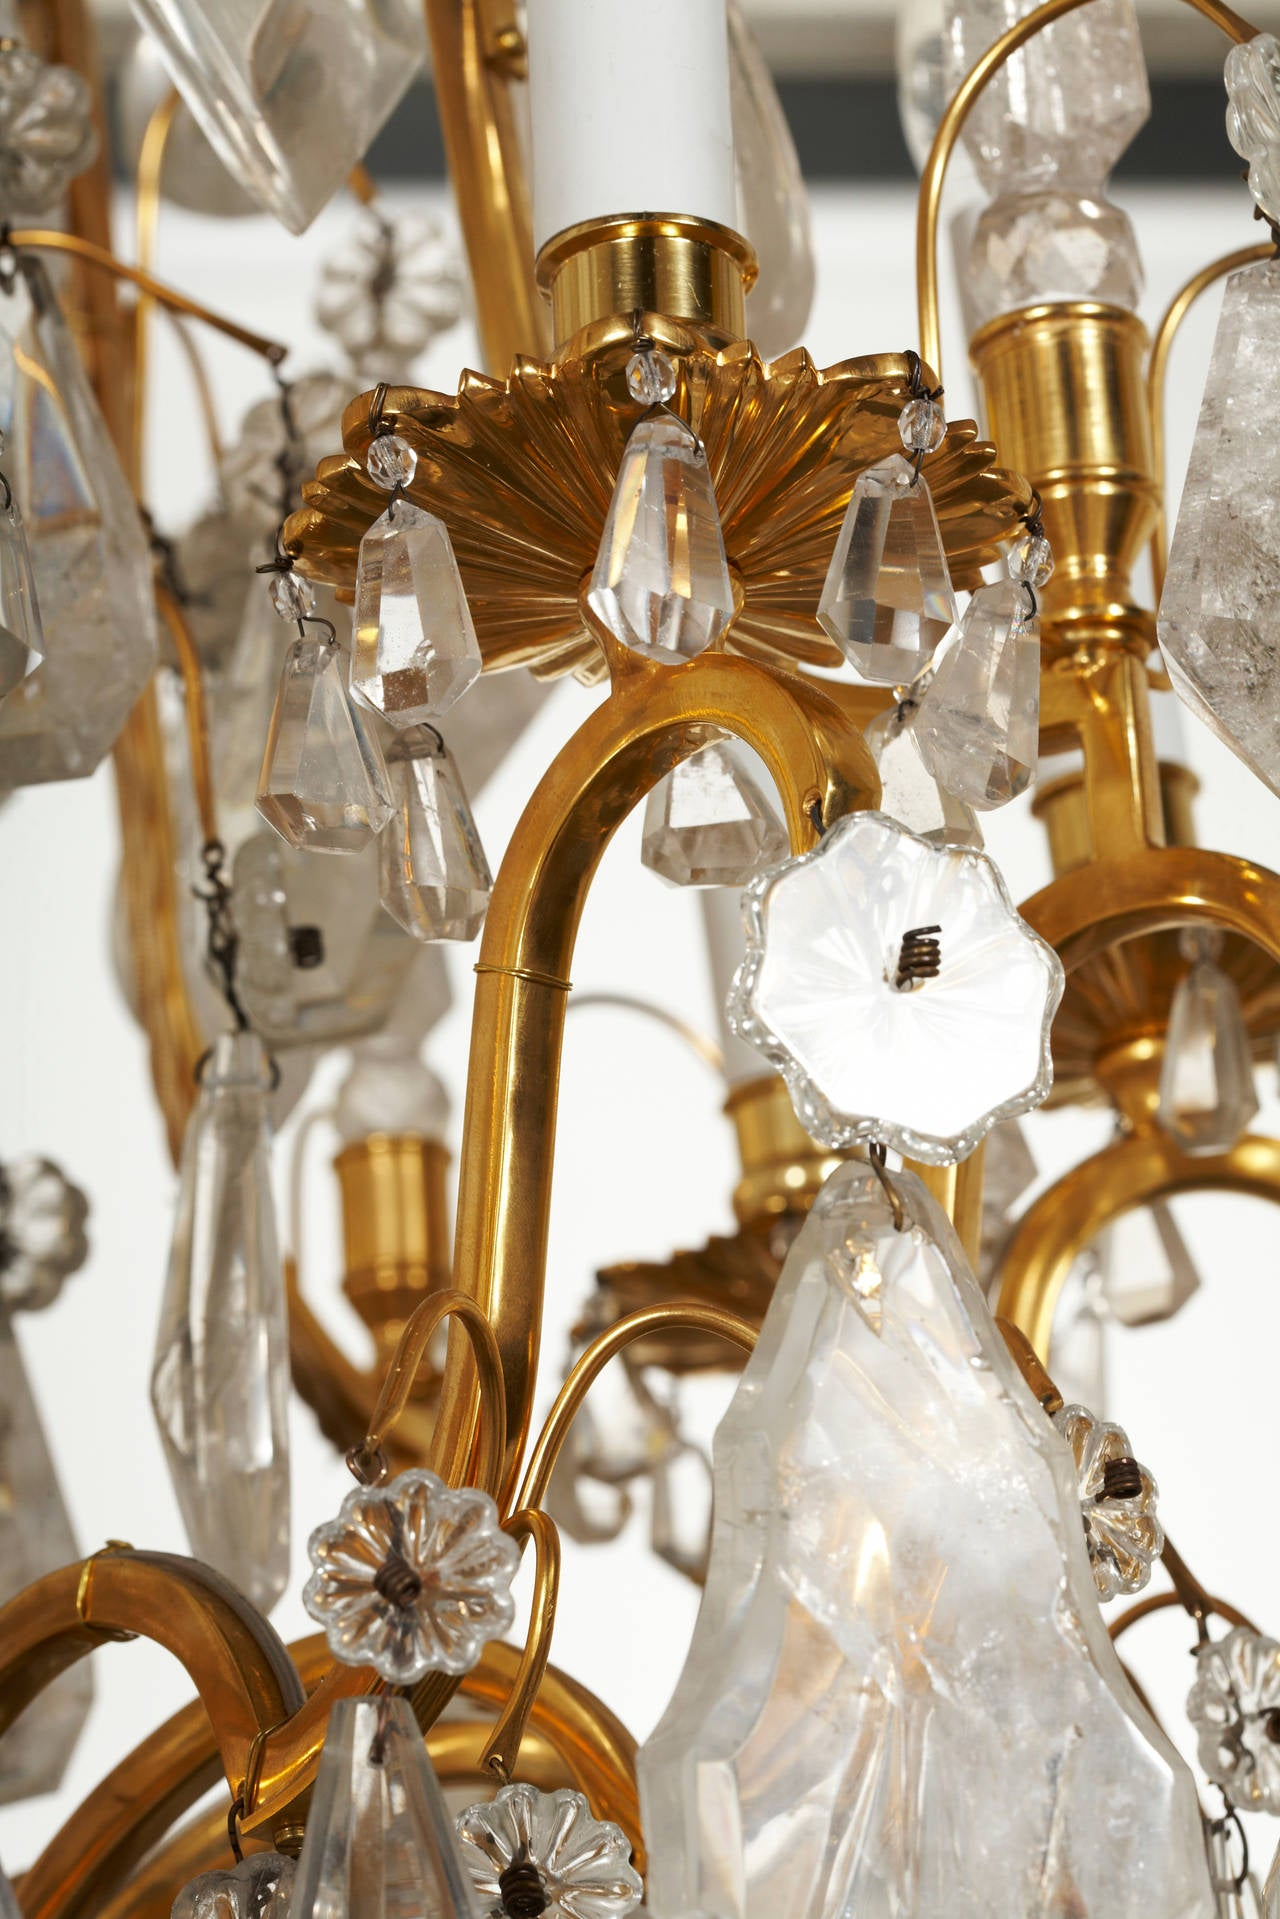 Unique french 18th century style rock crystal chandeliers for sale at 1stdibs - Unique crystal chandeliers ...